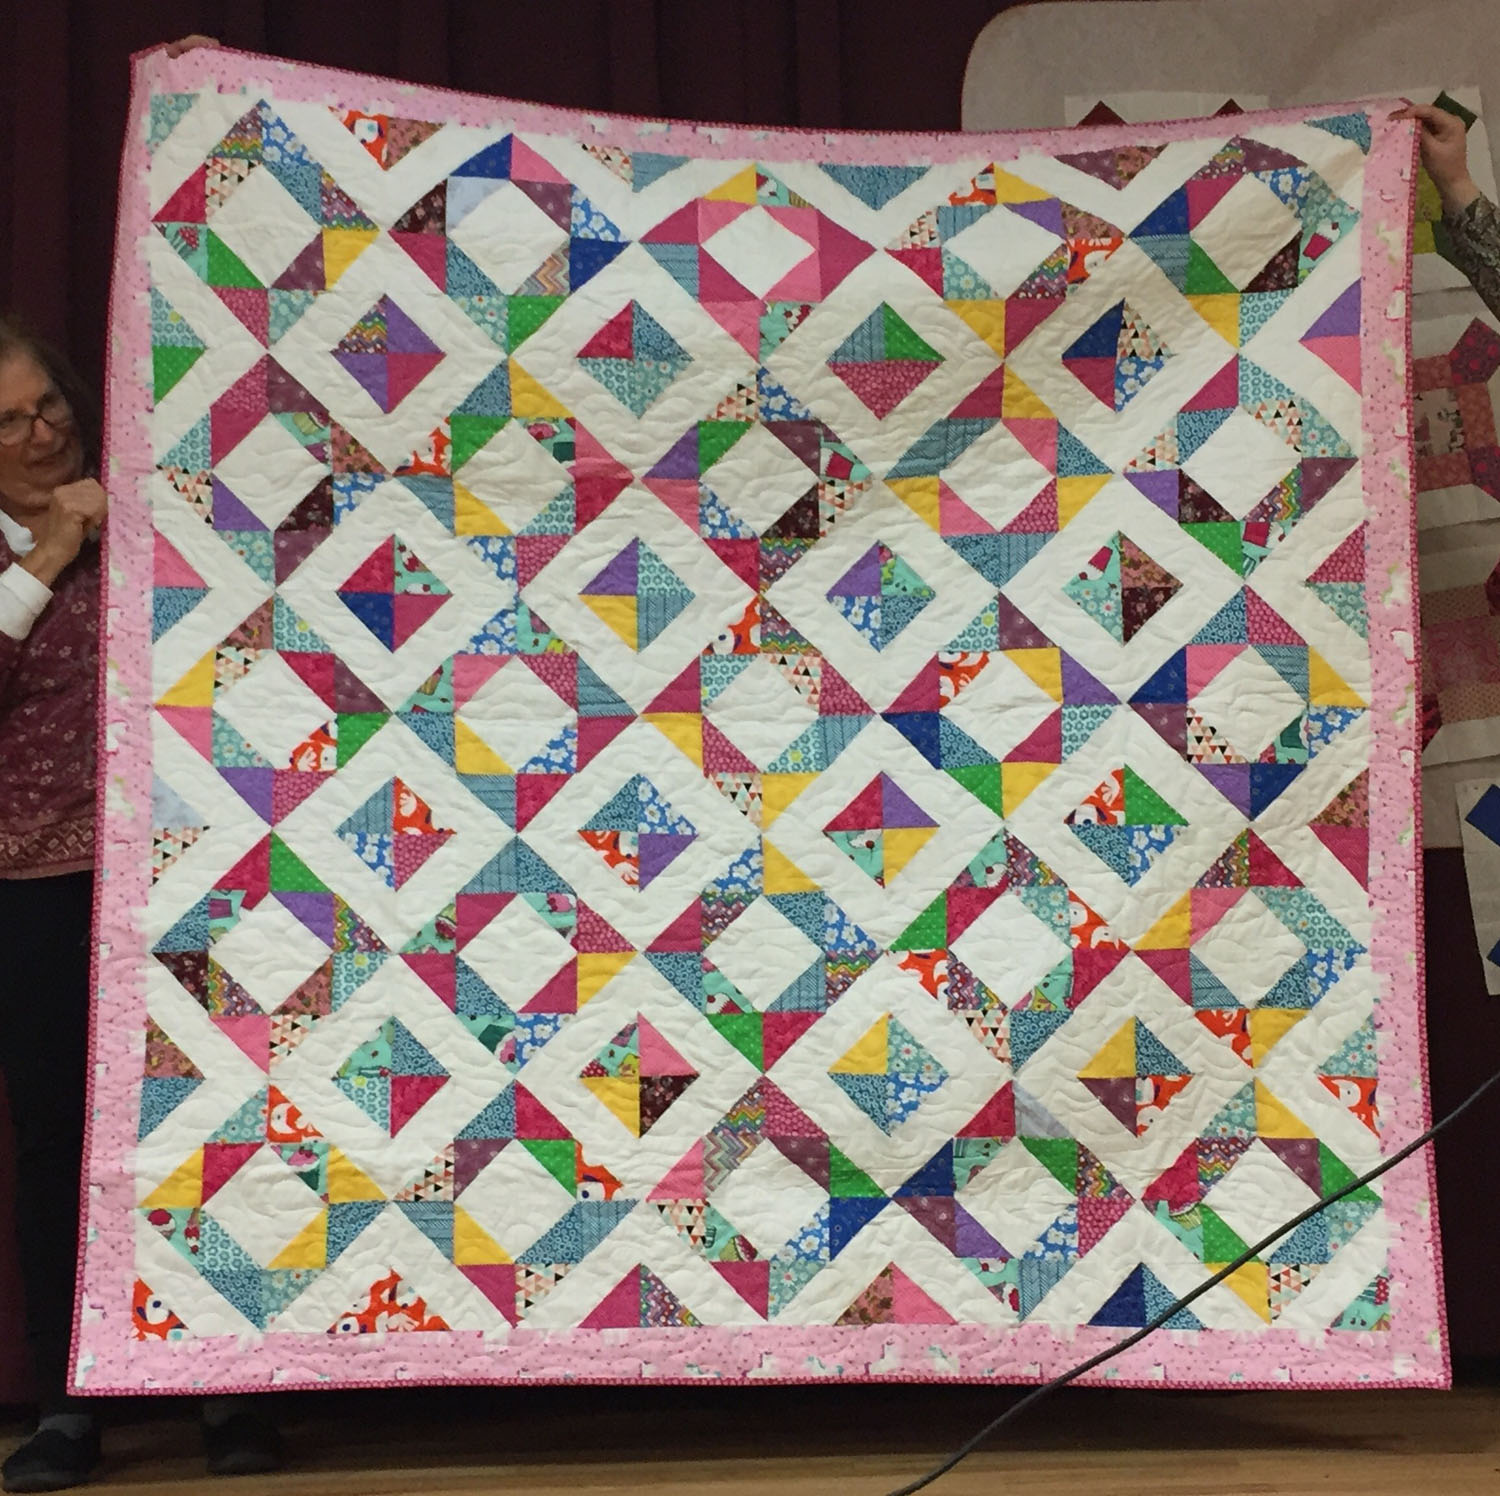 Aubrey's quilt by Margraret English